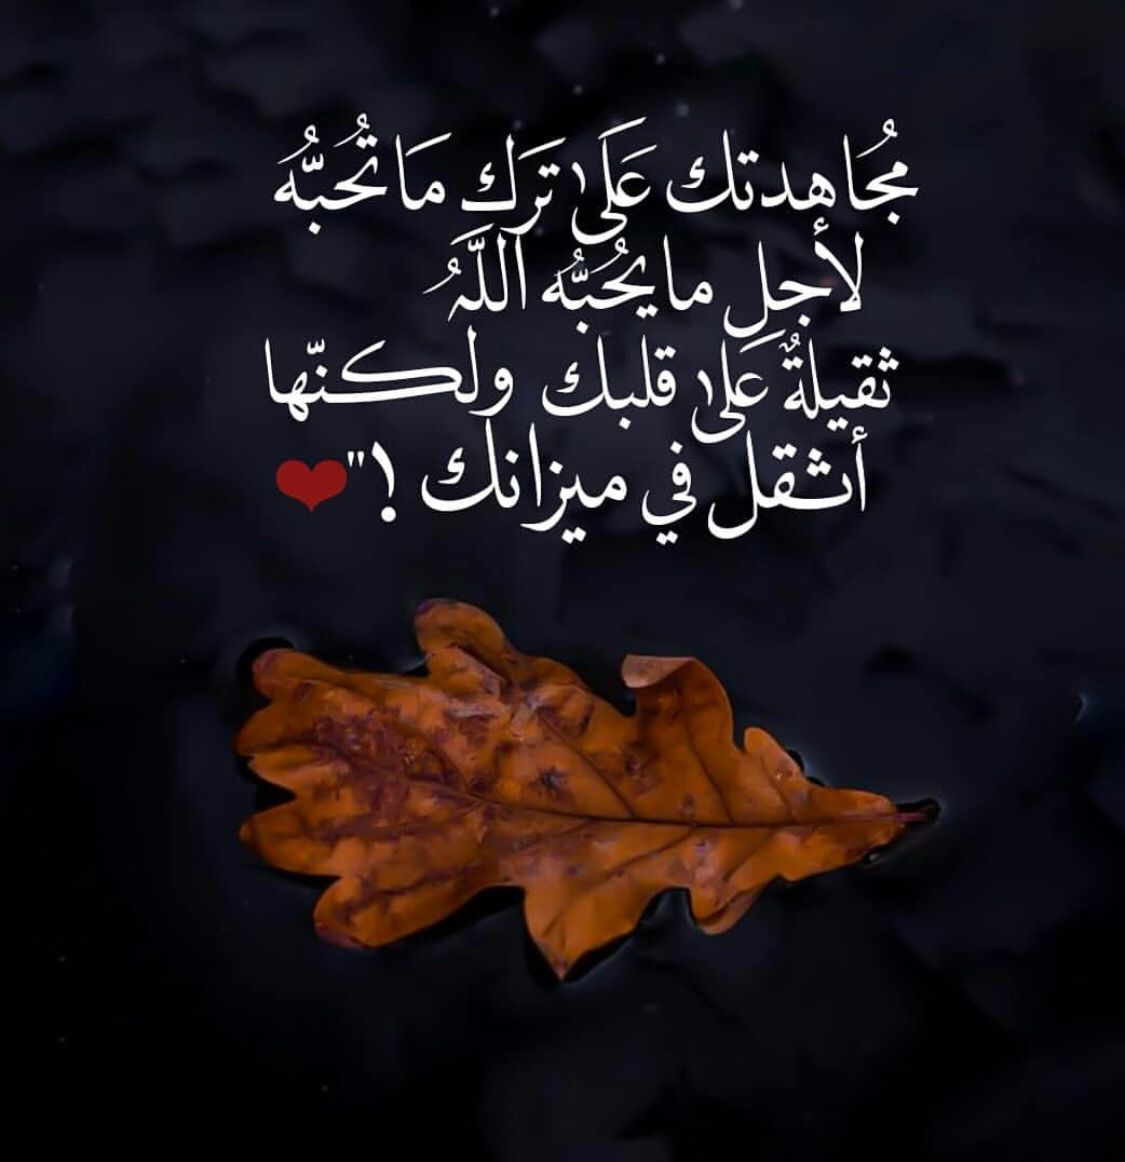 Pin By Tasneem On مواعظ خواطر إسلامية Islamic Quotes Word Pictures Cool Words